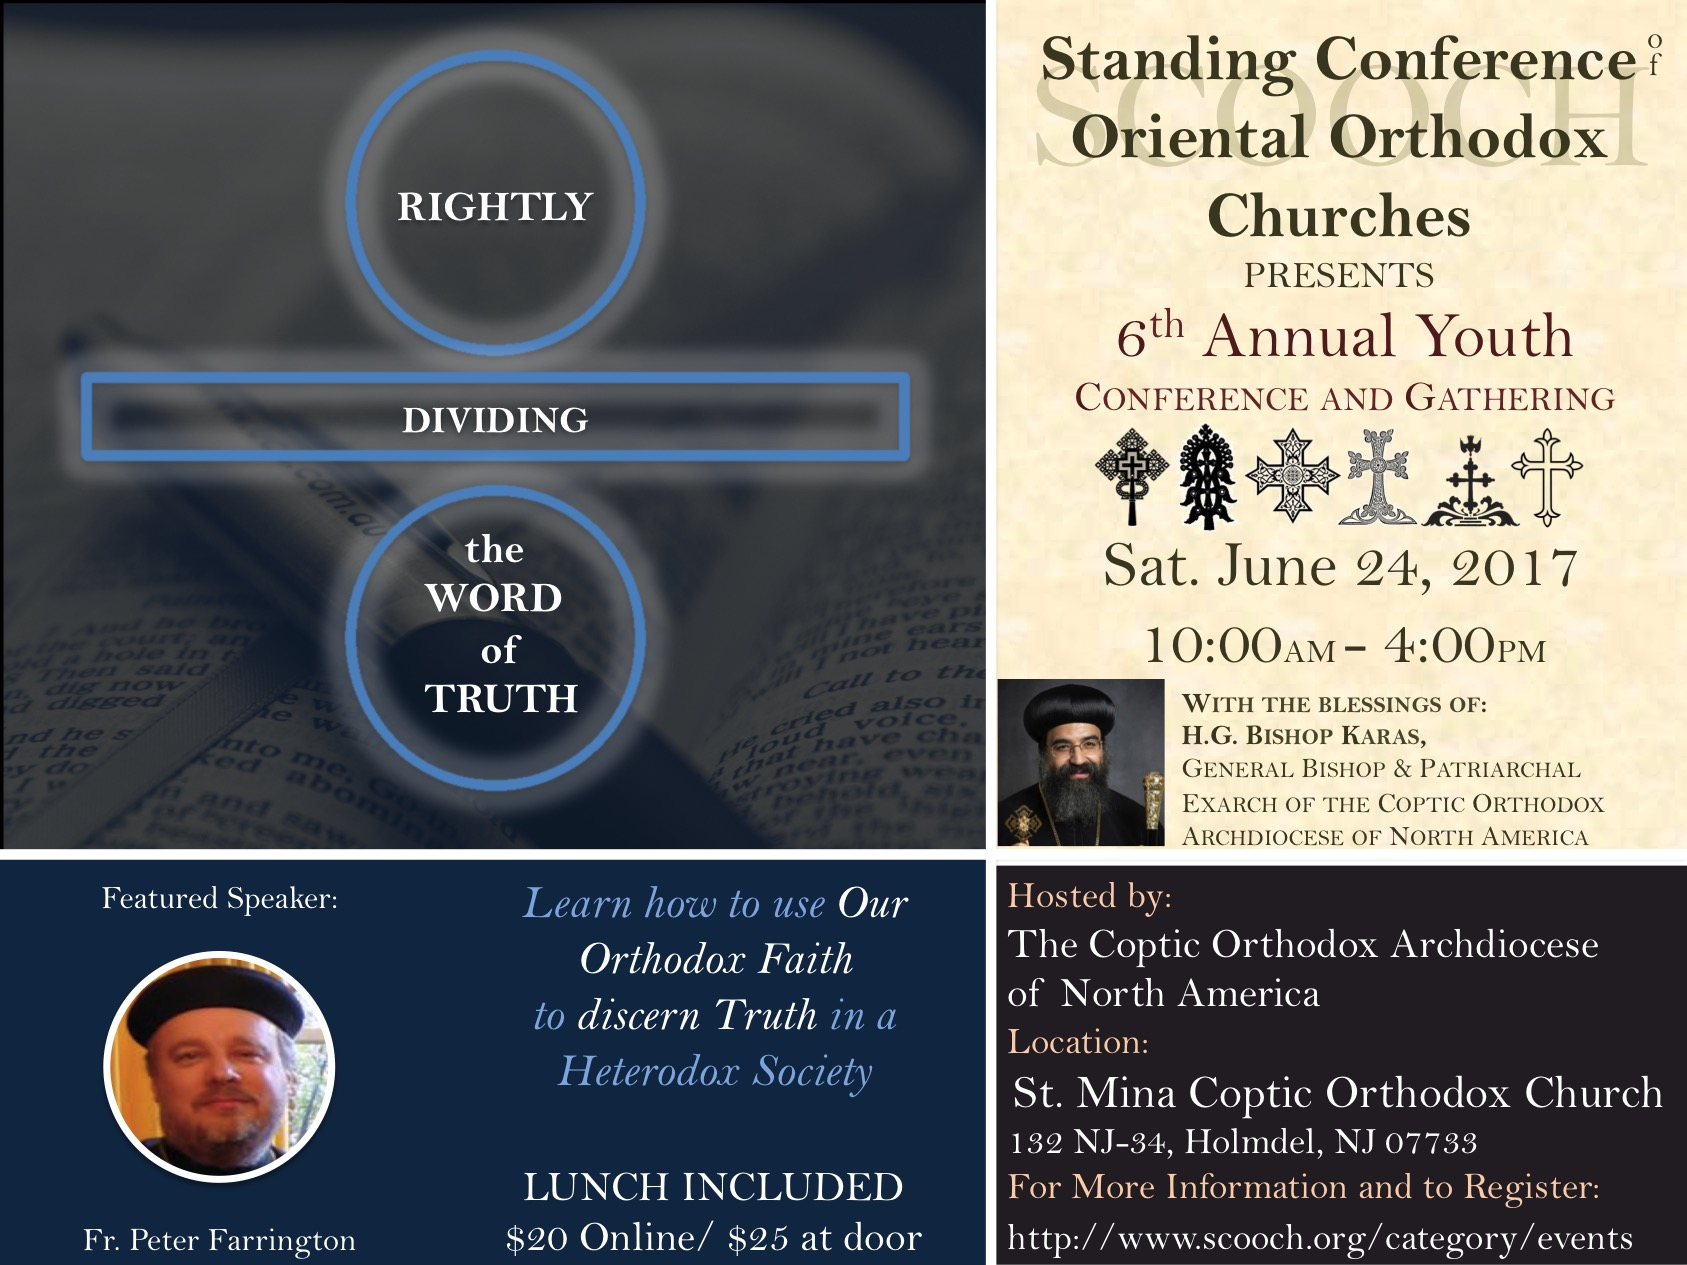 Printable Flyer for Parishes